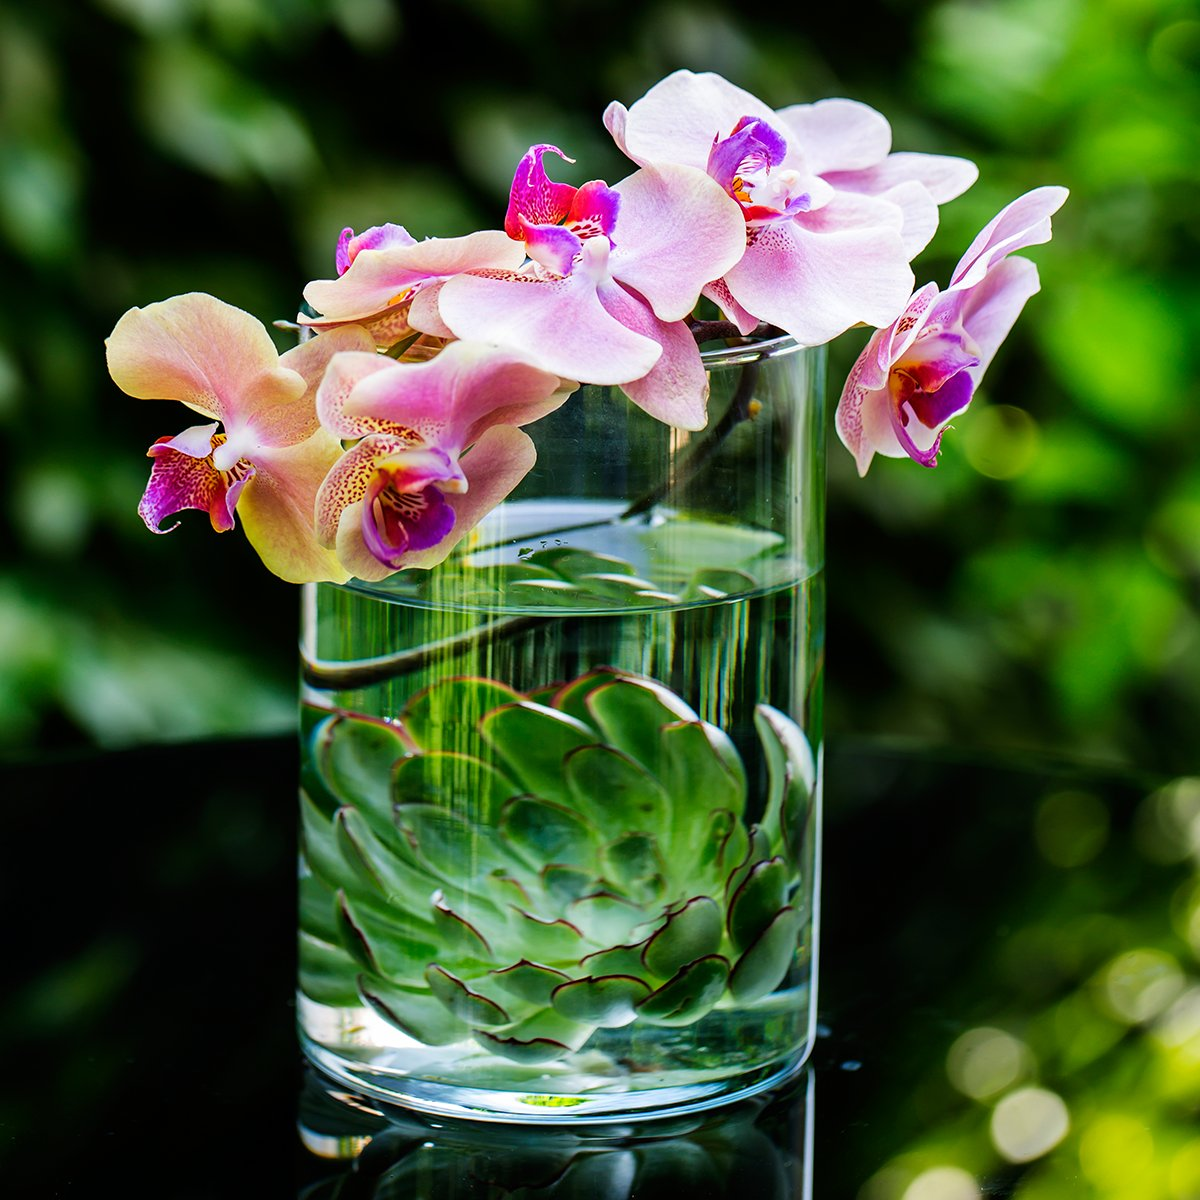 The orchid is Mother Nature's masterpiece. #Phalaenopsis #Dubai #Amman https://t.co/r4m9ILFZJS